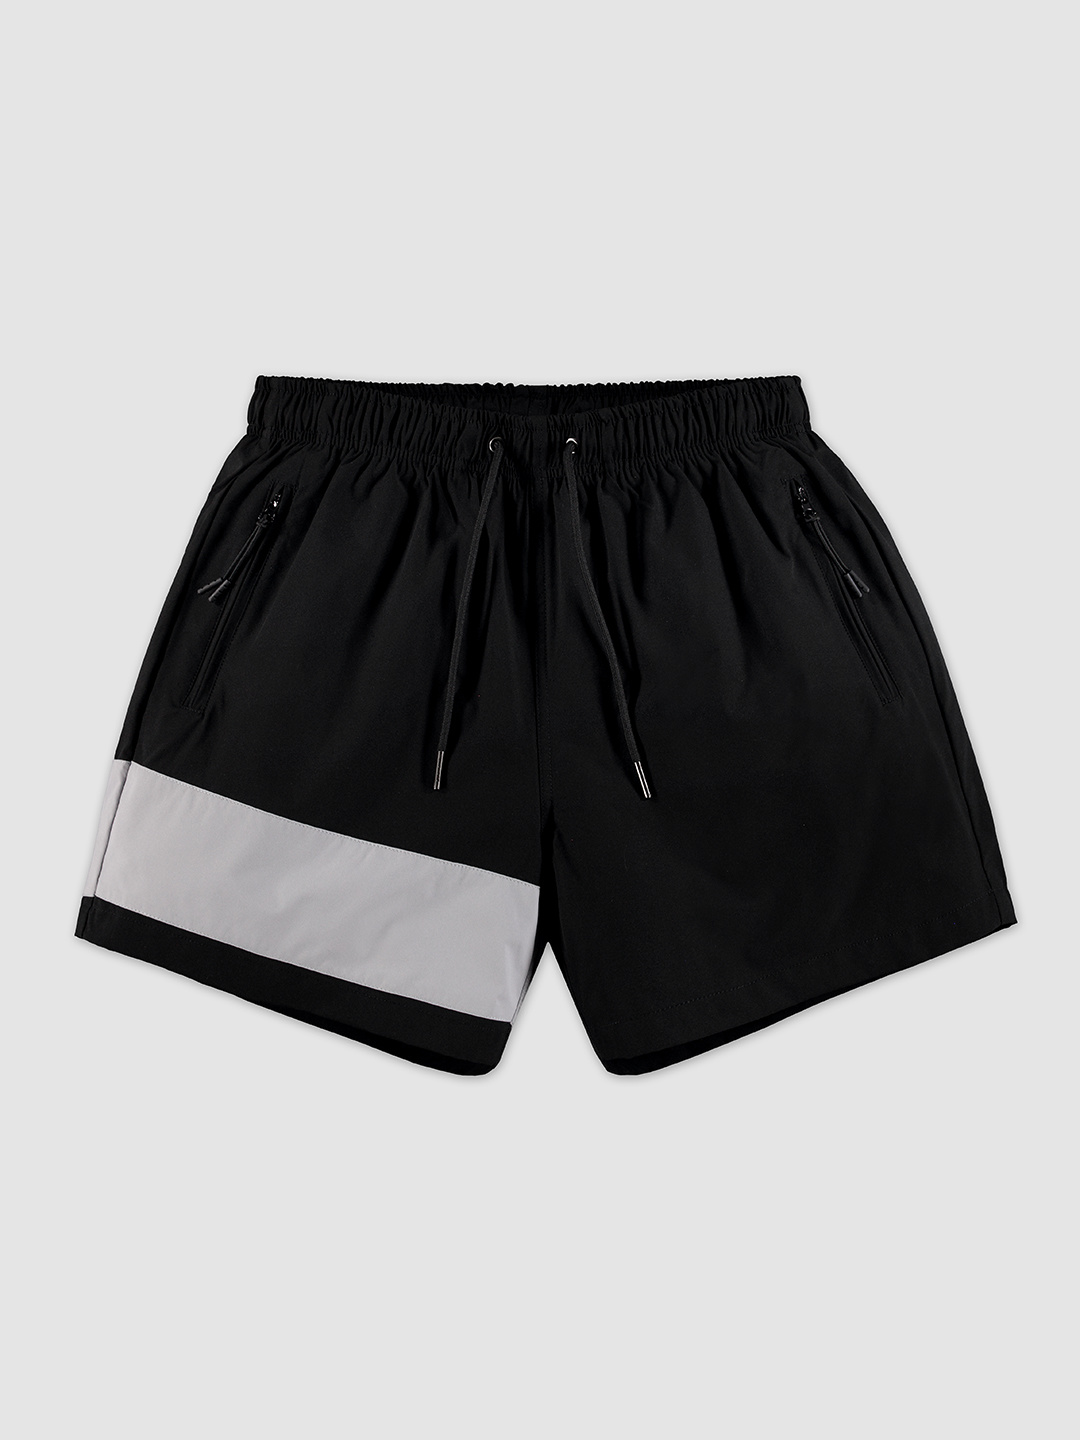 Band Swimshort Black